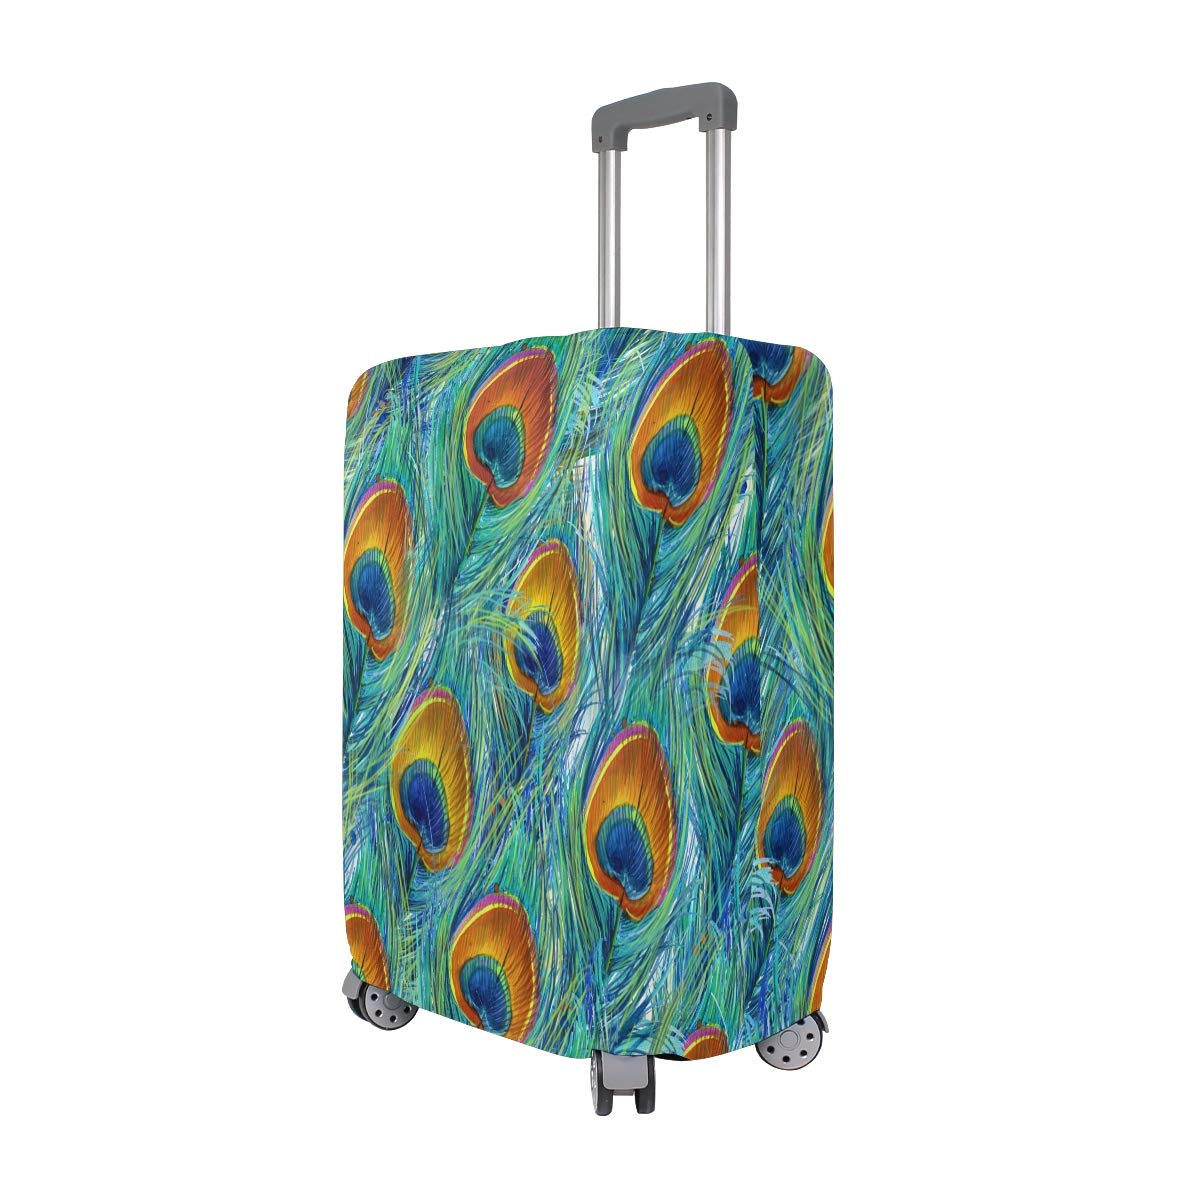 VIKKO Beautiful Peacock Feather Travel Luggage Cover Suitcase Cover Protector Travel Case Bag Protector Elastic Luggage Case Cover Fits 26-28 Inch Luggage for Kids Men Women Travel